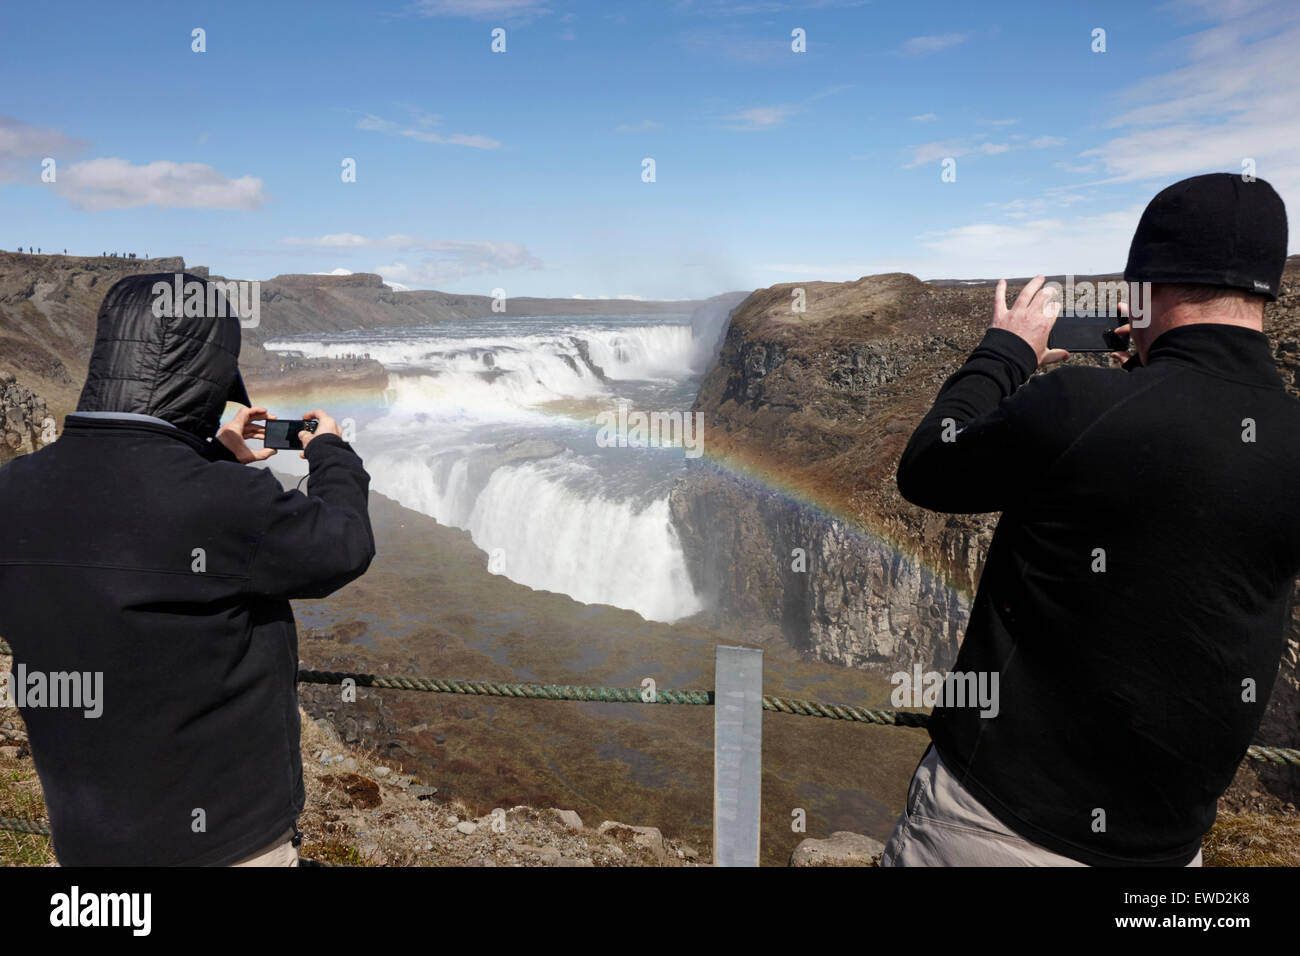 tourists taking photos at Gullfoss waterfall Iceland - Stock Image